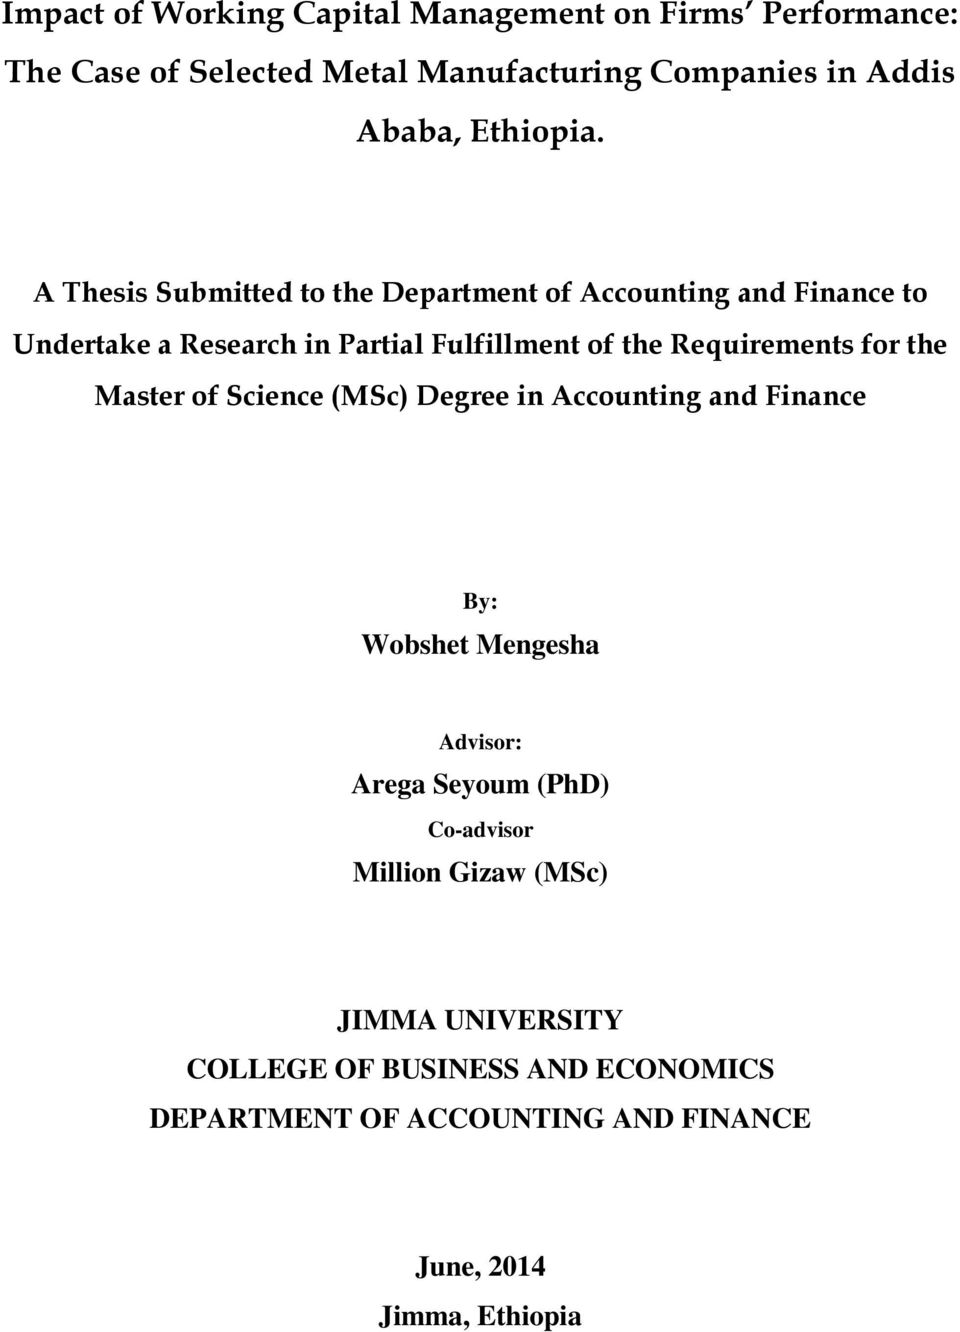 Impact of Working Capital Management on Firms Performance: The Case